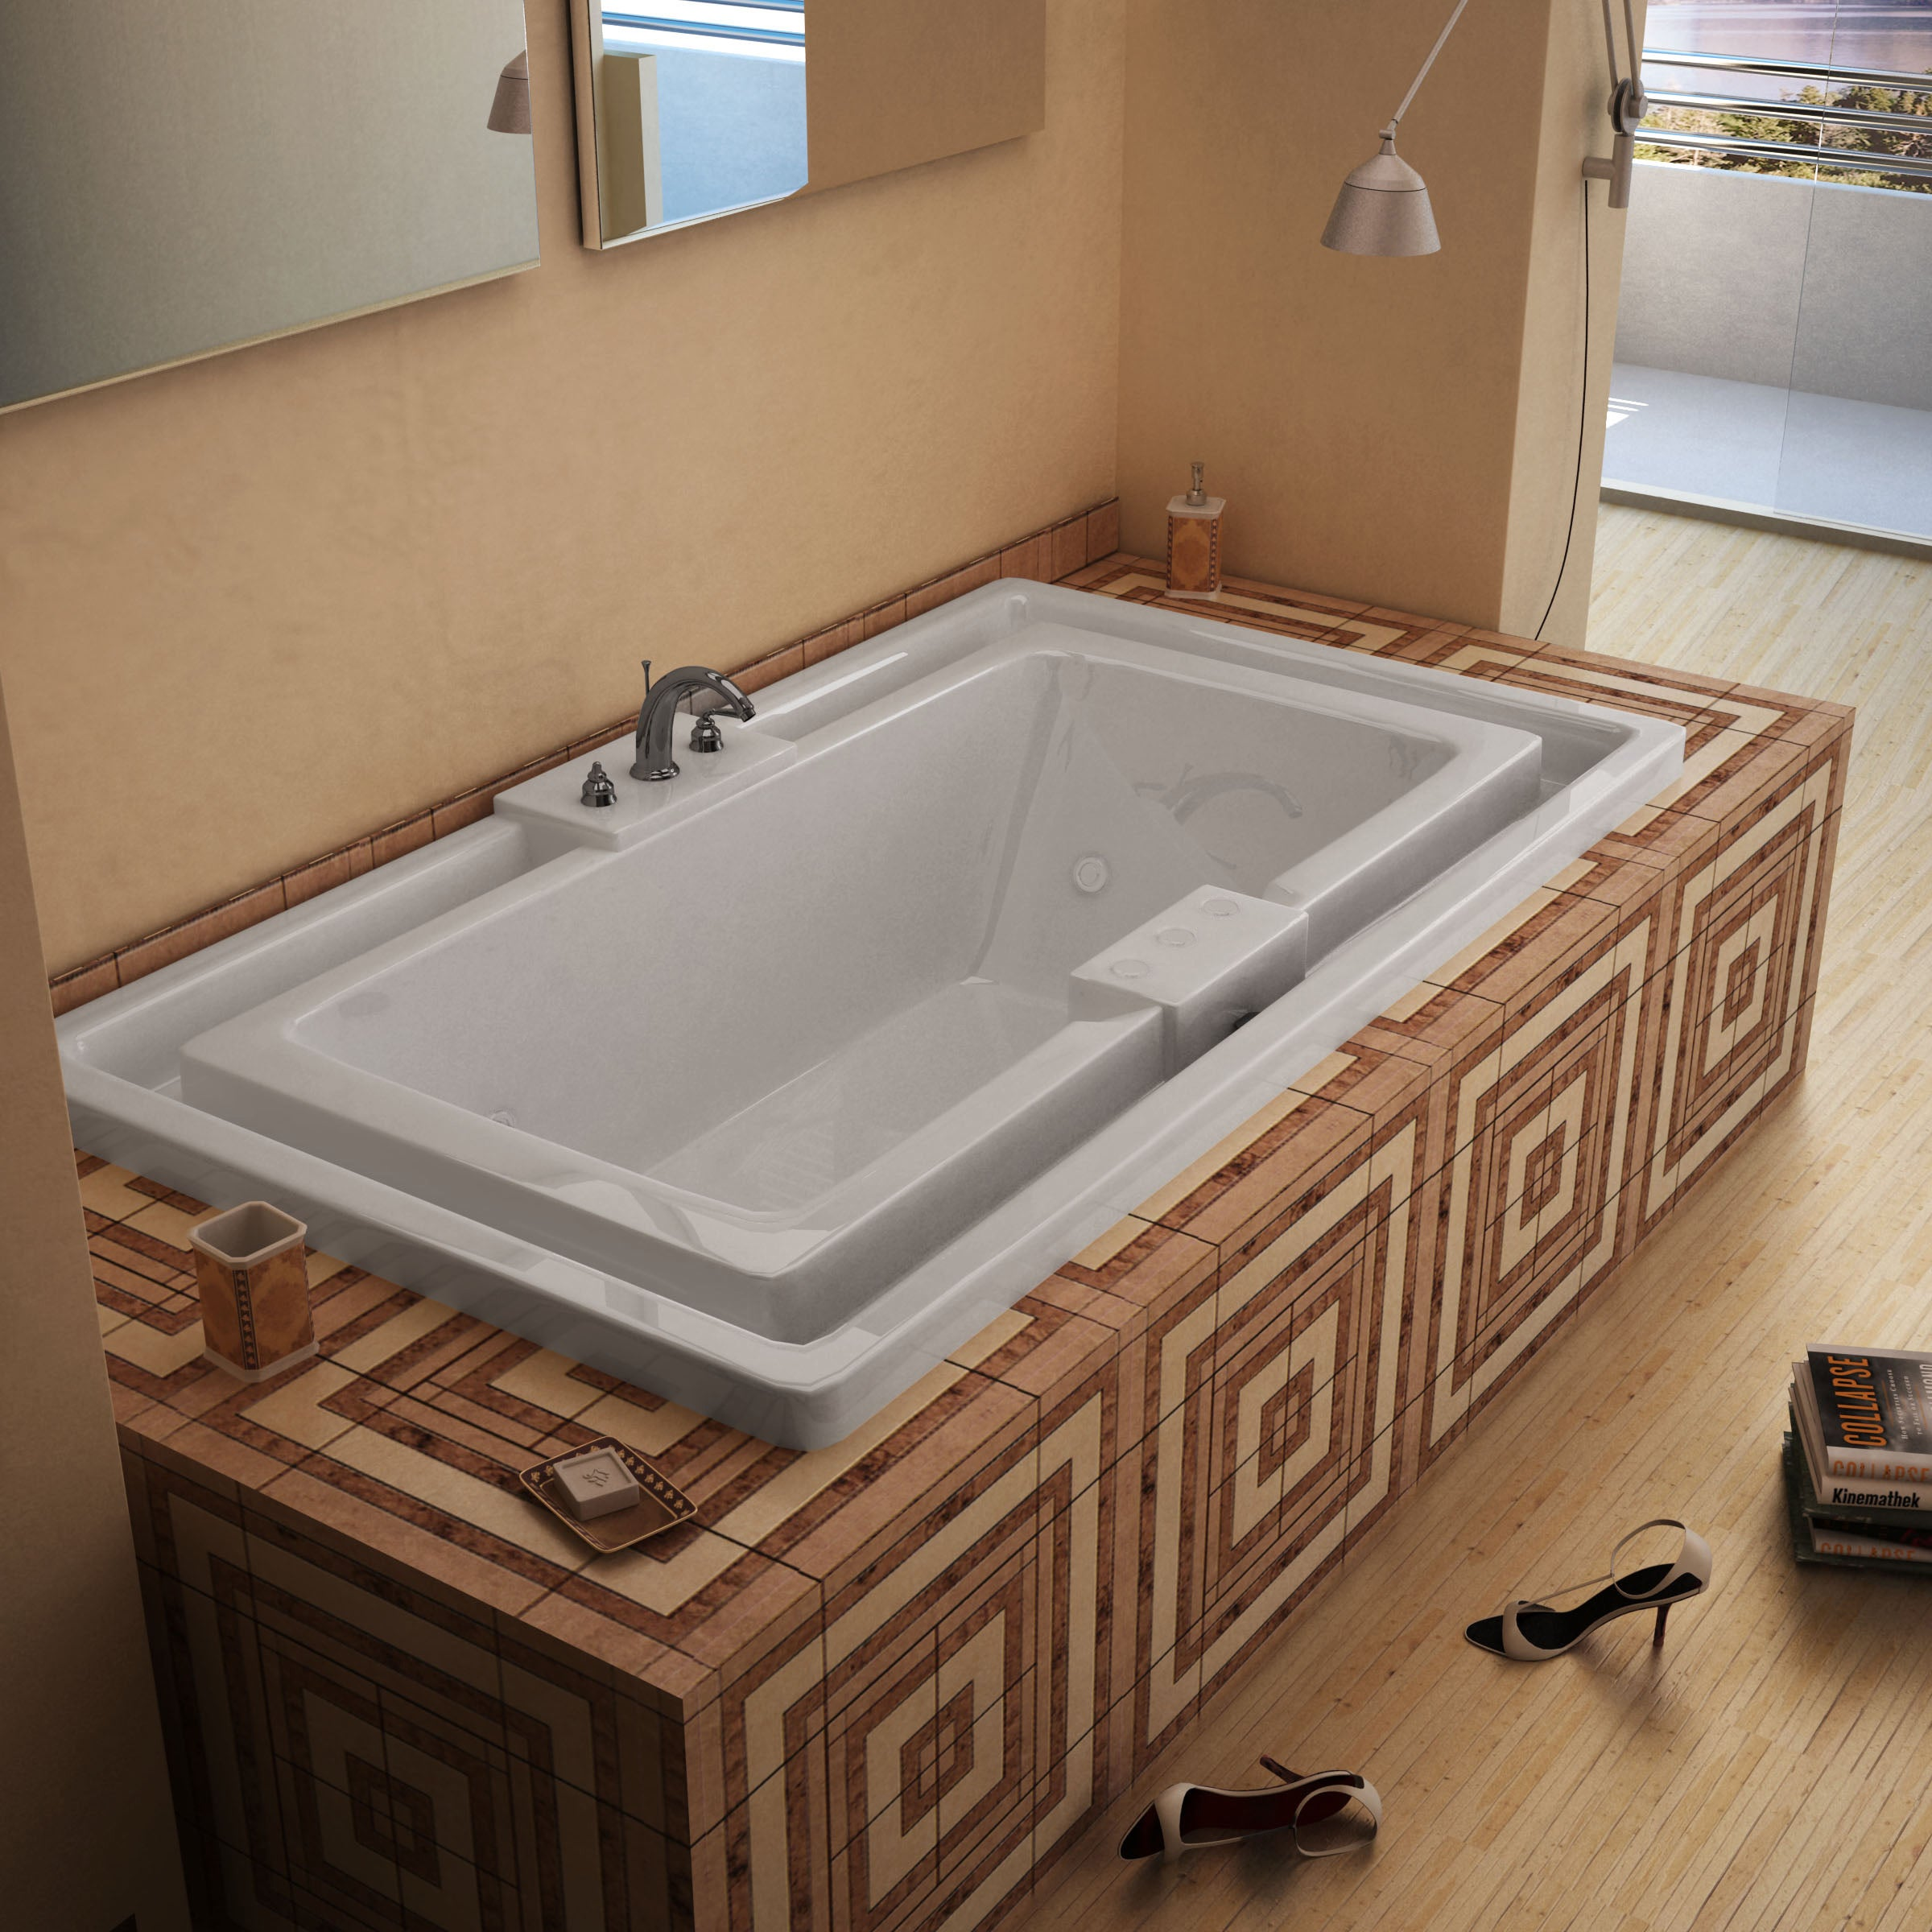 Mountain Home Evans 46x78-inch Acrylic Whirlpool Jetted Drop-in ...